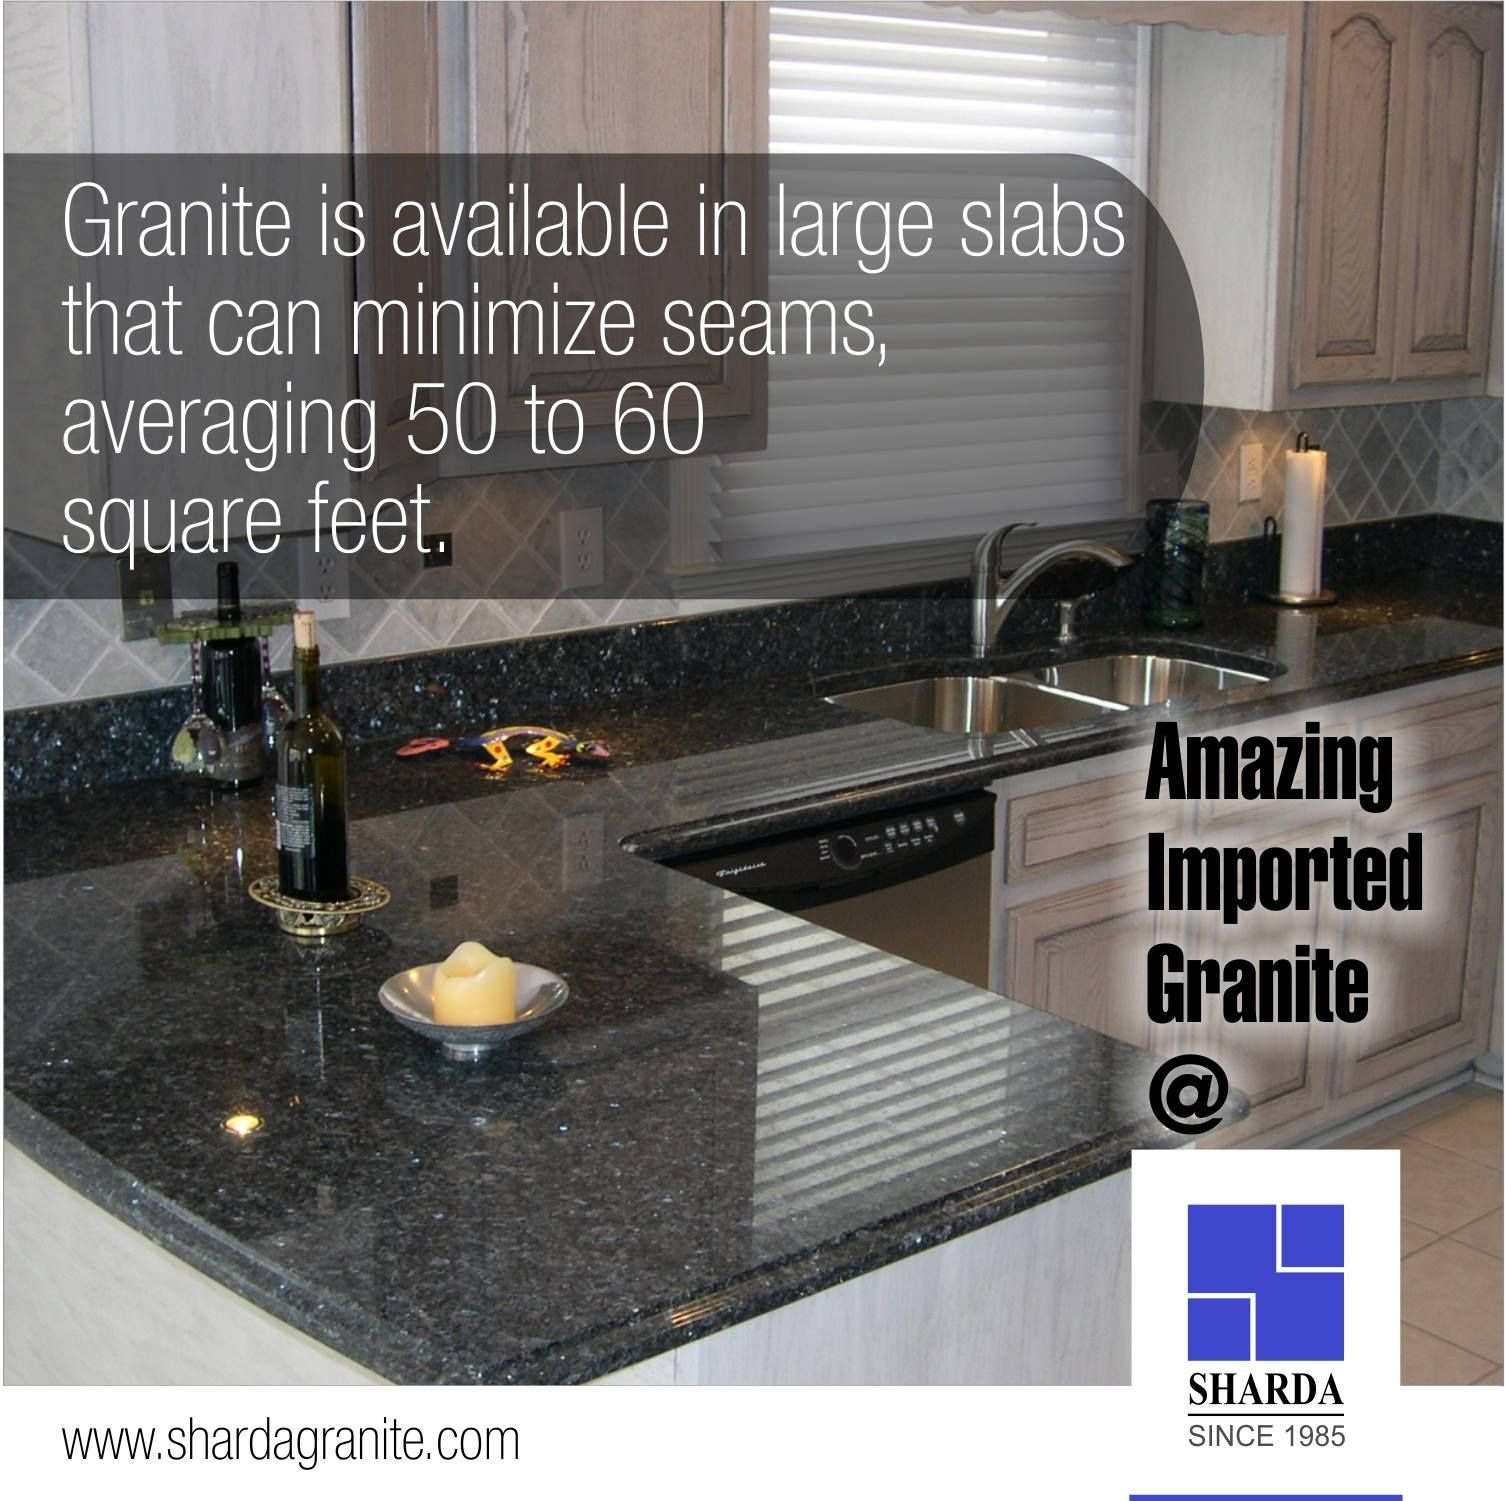 Granite is available in large slabs that can minimize seams